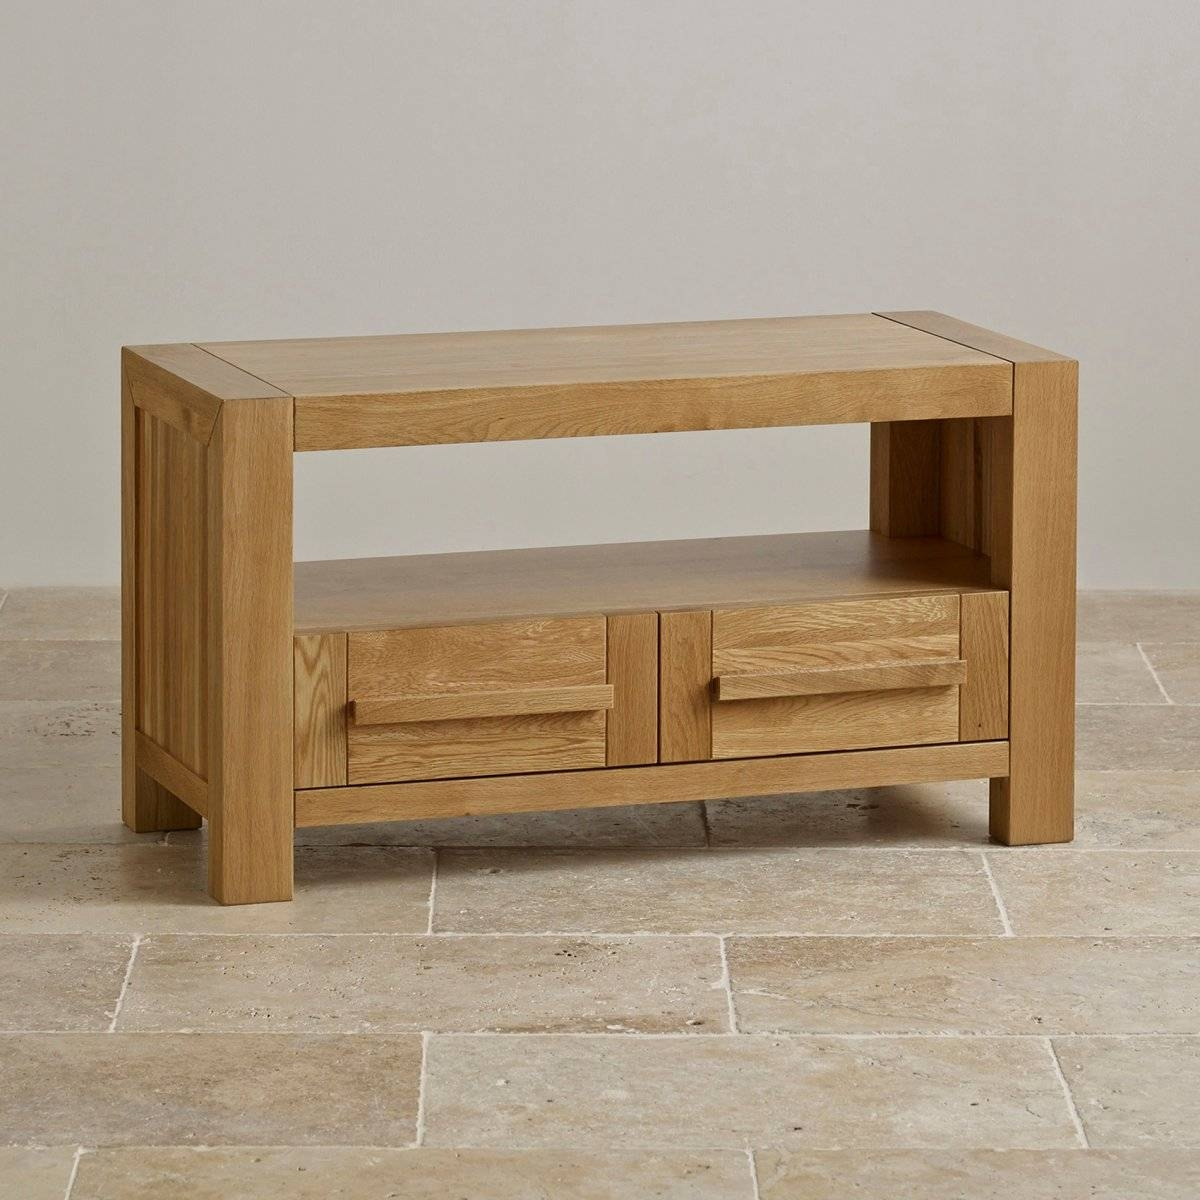 Fresco 2 Drawer Tv Cabinet In Solid Oak | Oak Furniture Land Within Small Oak Tv Cabinets (View 5 of 15)